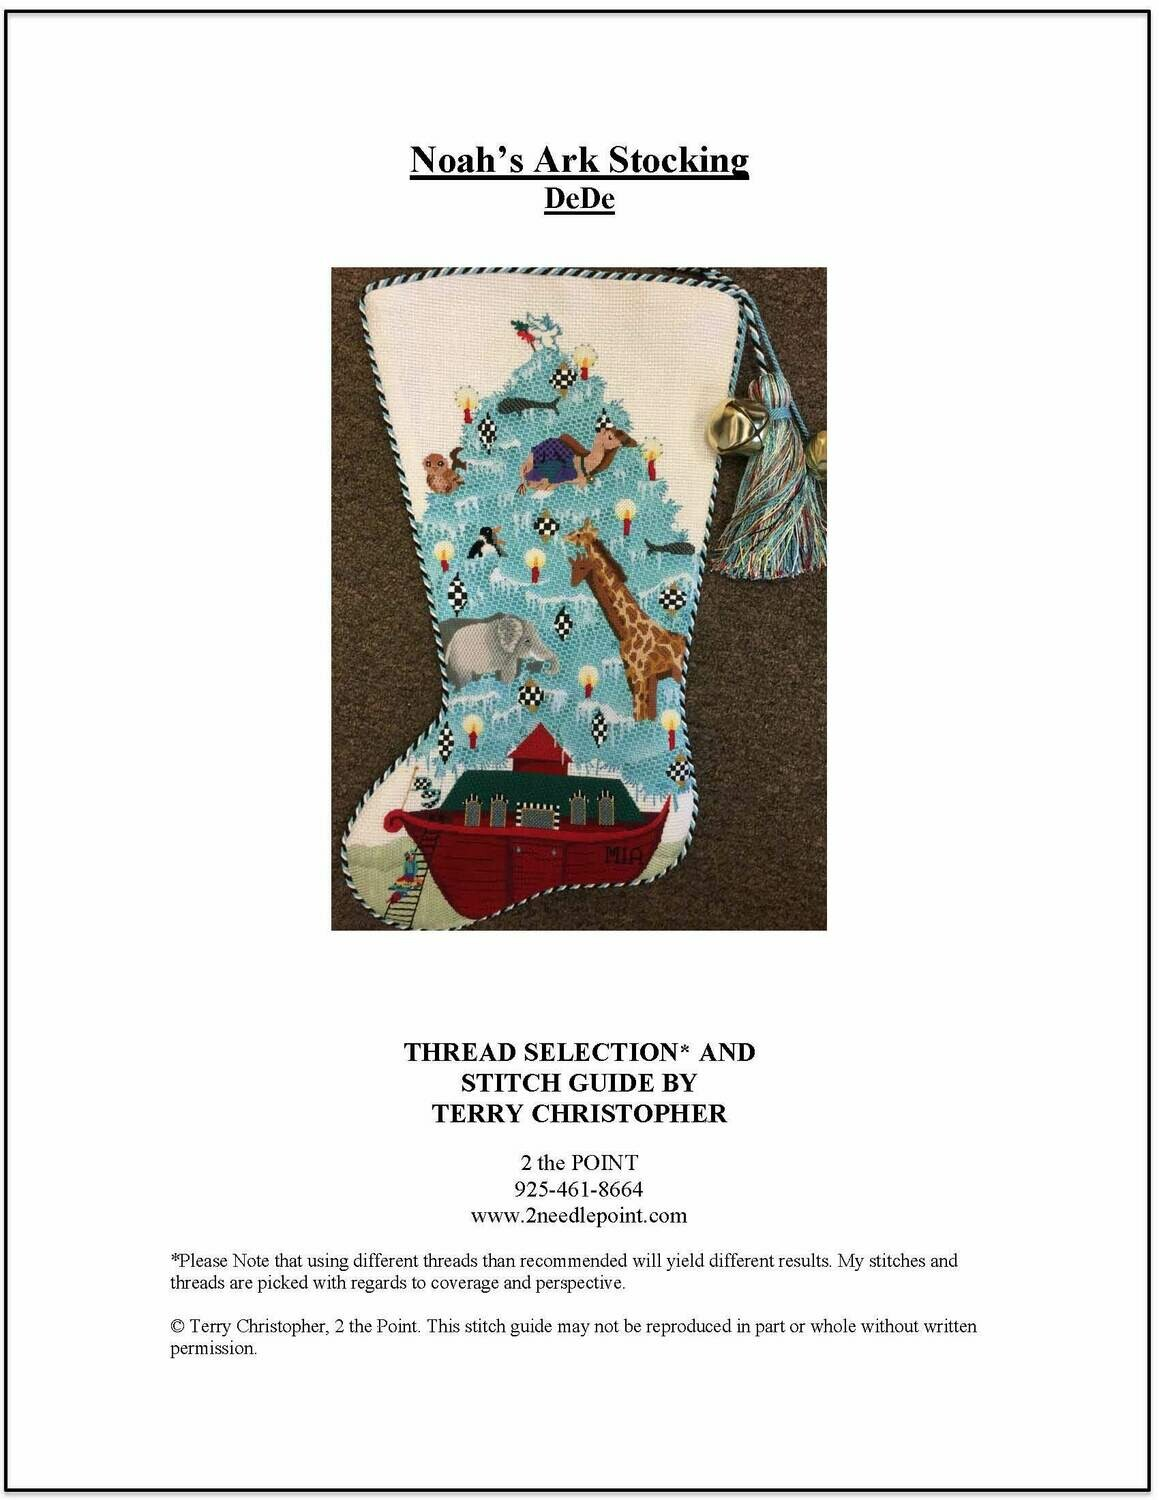 Dede, Noahs Ark Stocking